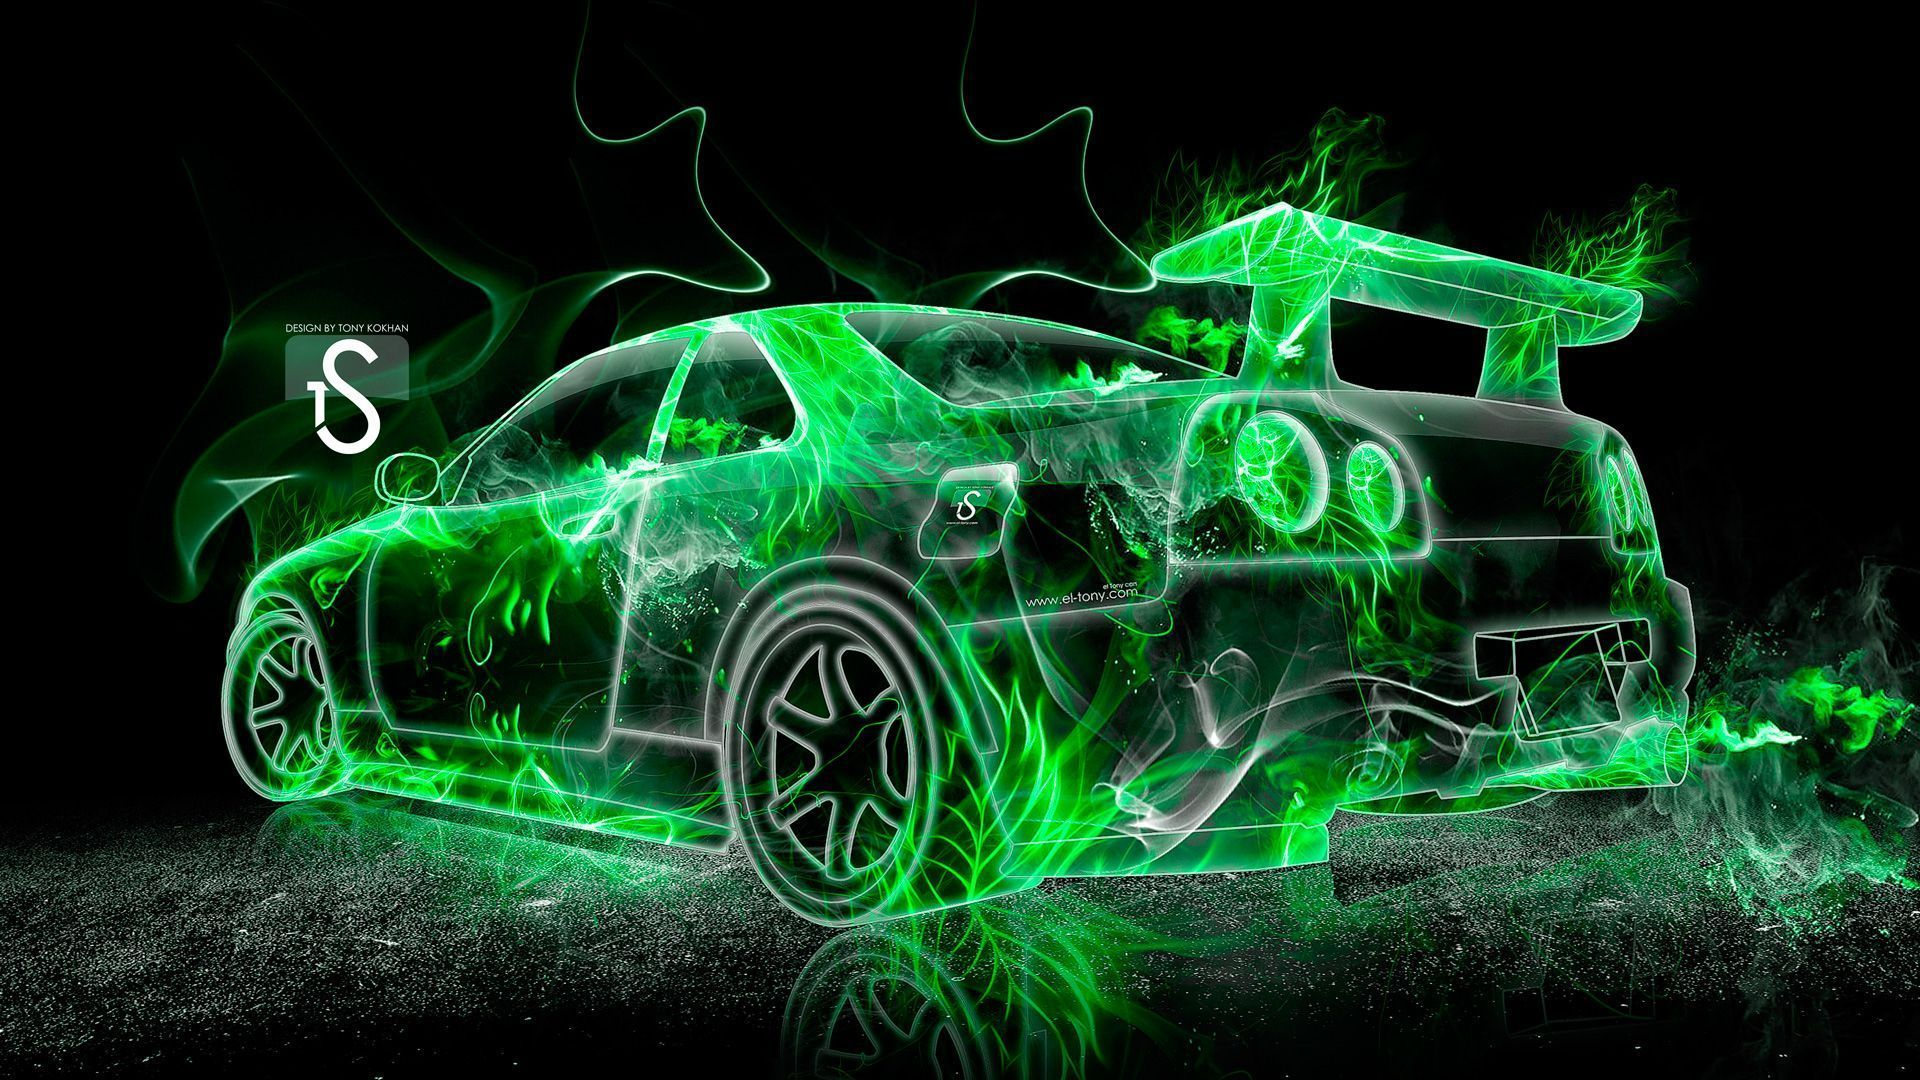 Etonnant Nissan Skyline GTR R34 Fire Abstract Car 2013 « El Tony